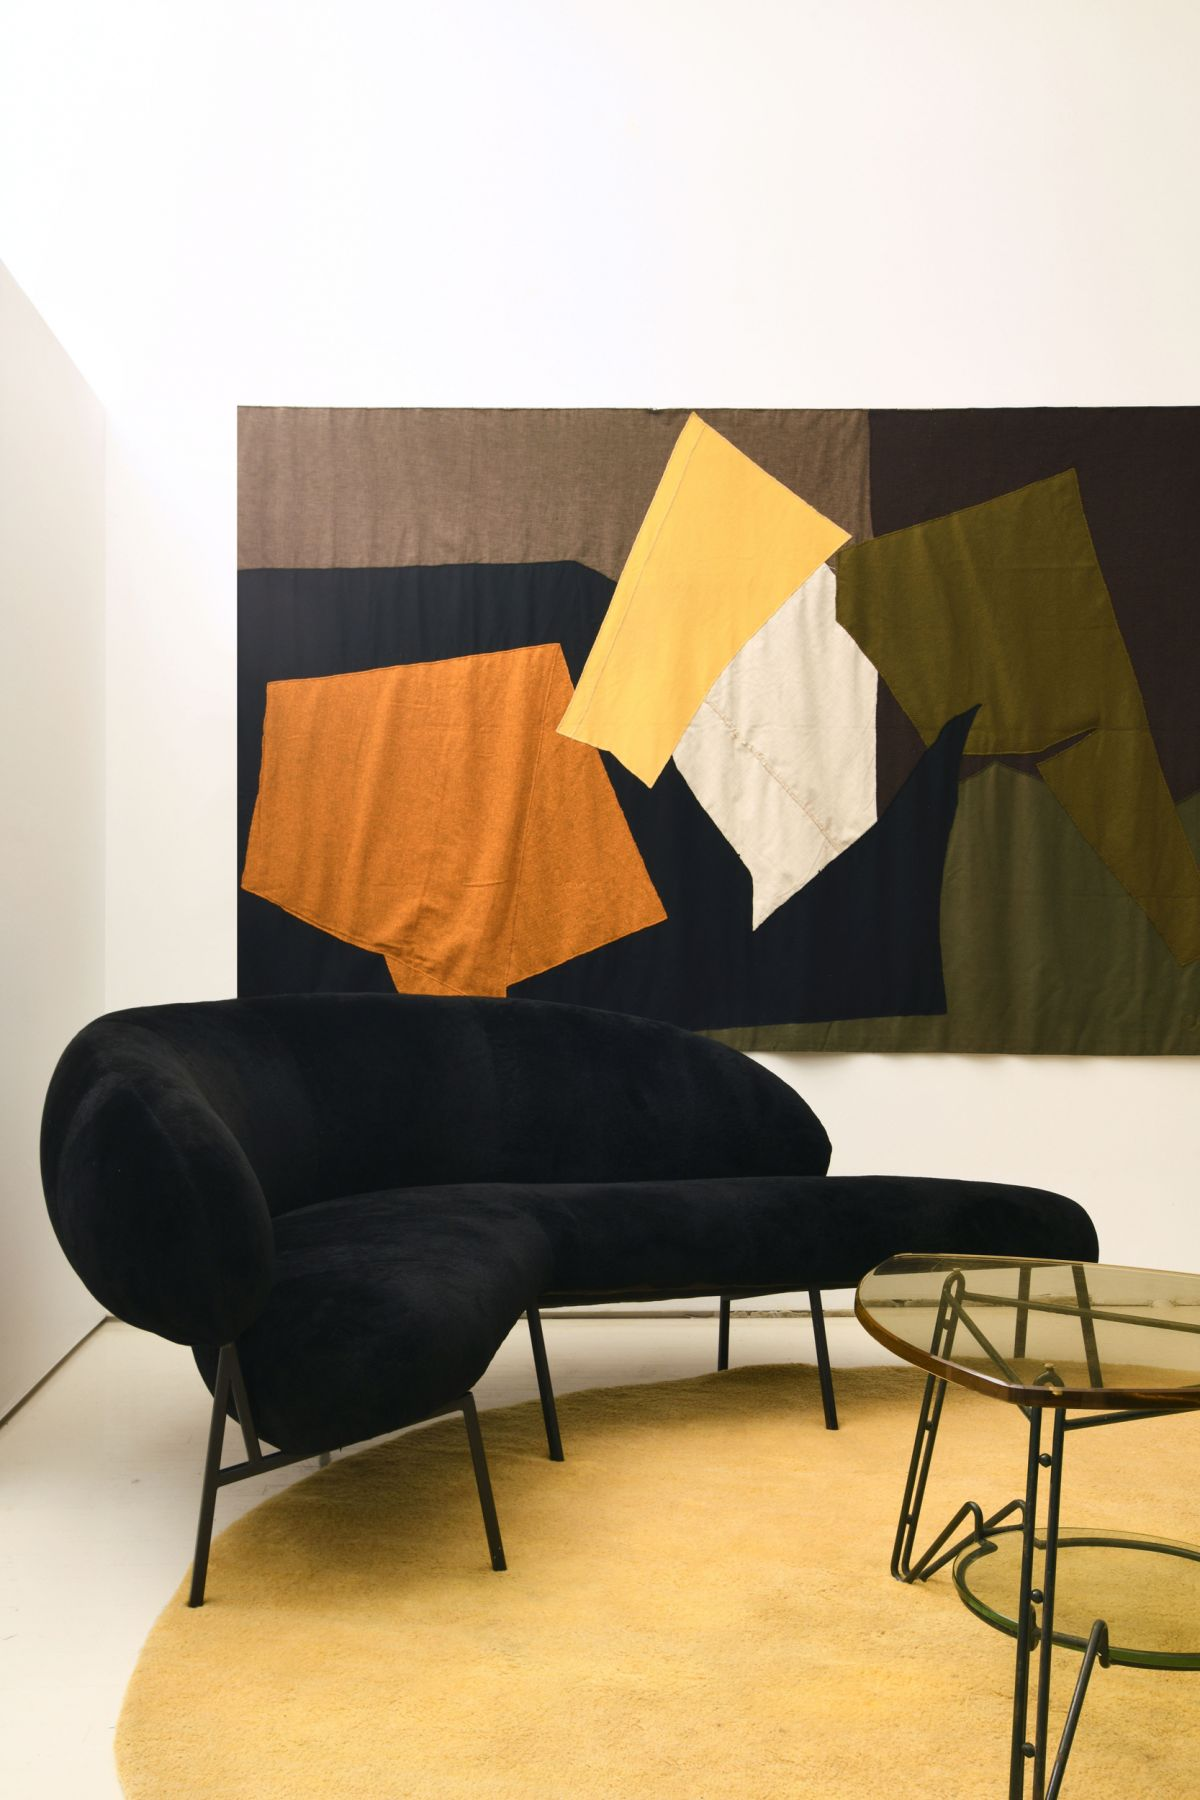 Michael Bargo's pace - installation image including sofa by Pierre Szekely, tapestry by Claude Stahly and italian coffee table in metal and glass.